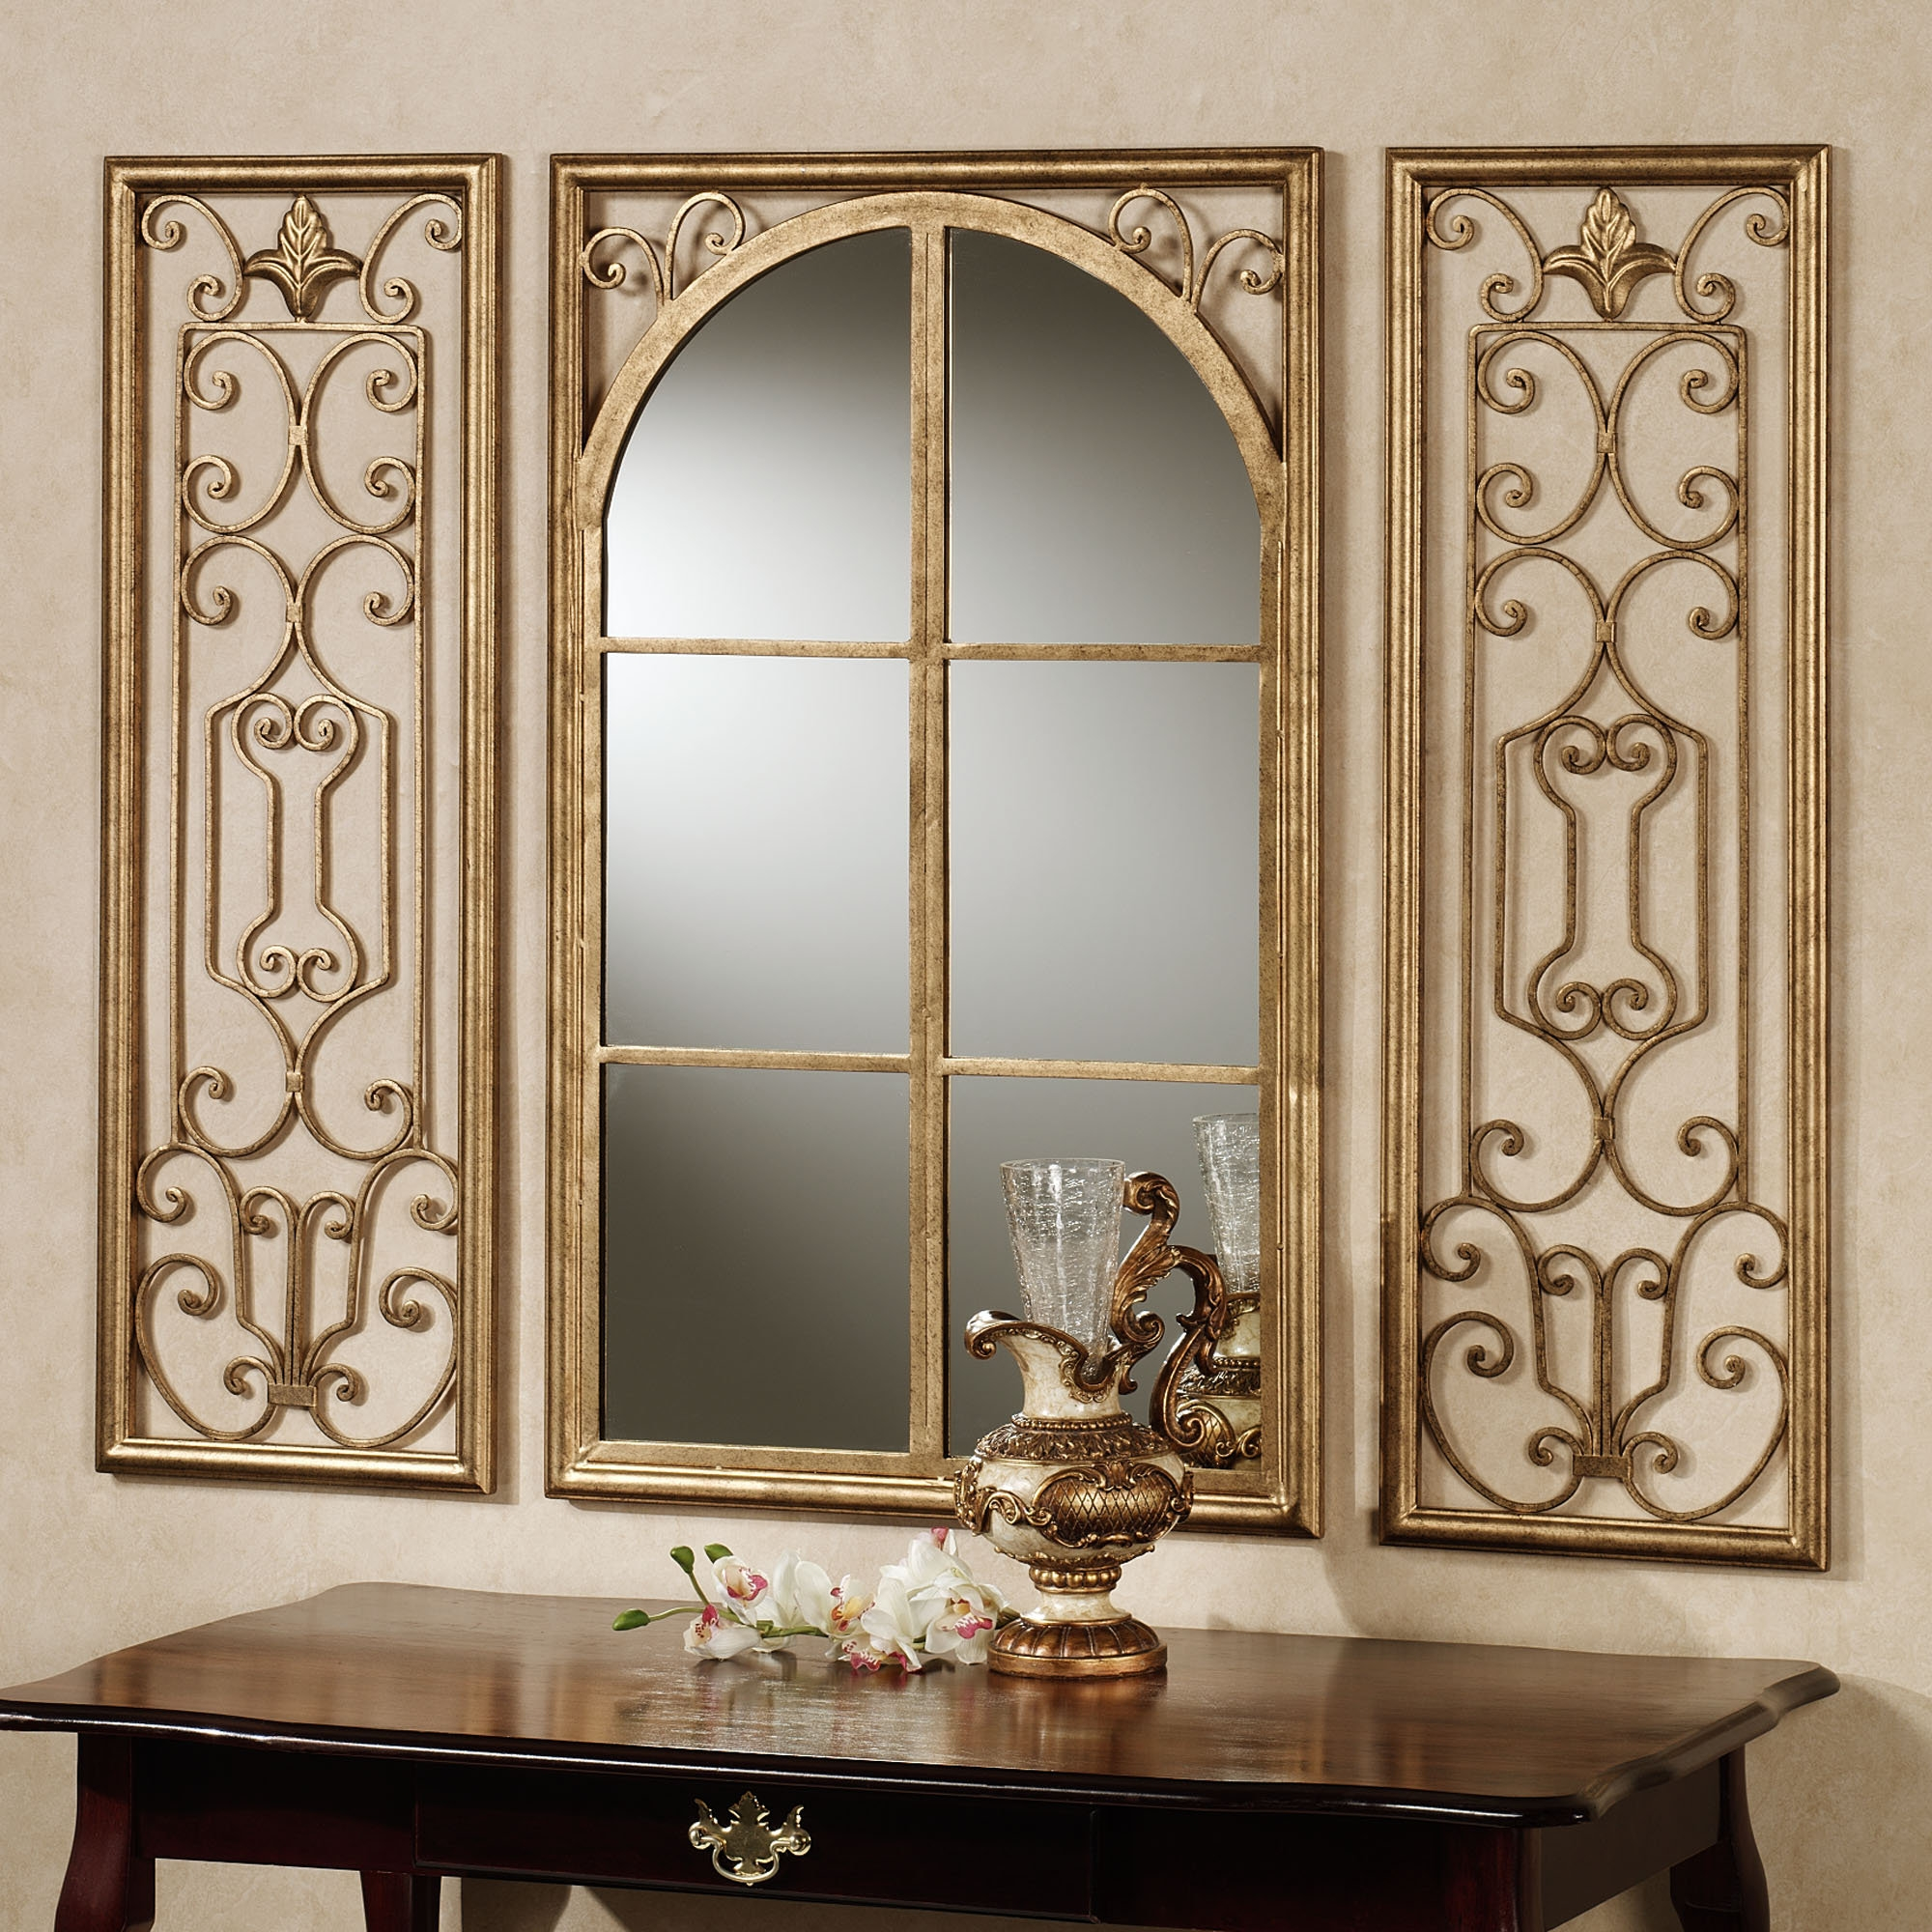 Wooden Wall Mirrors Decorative